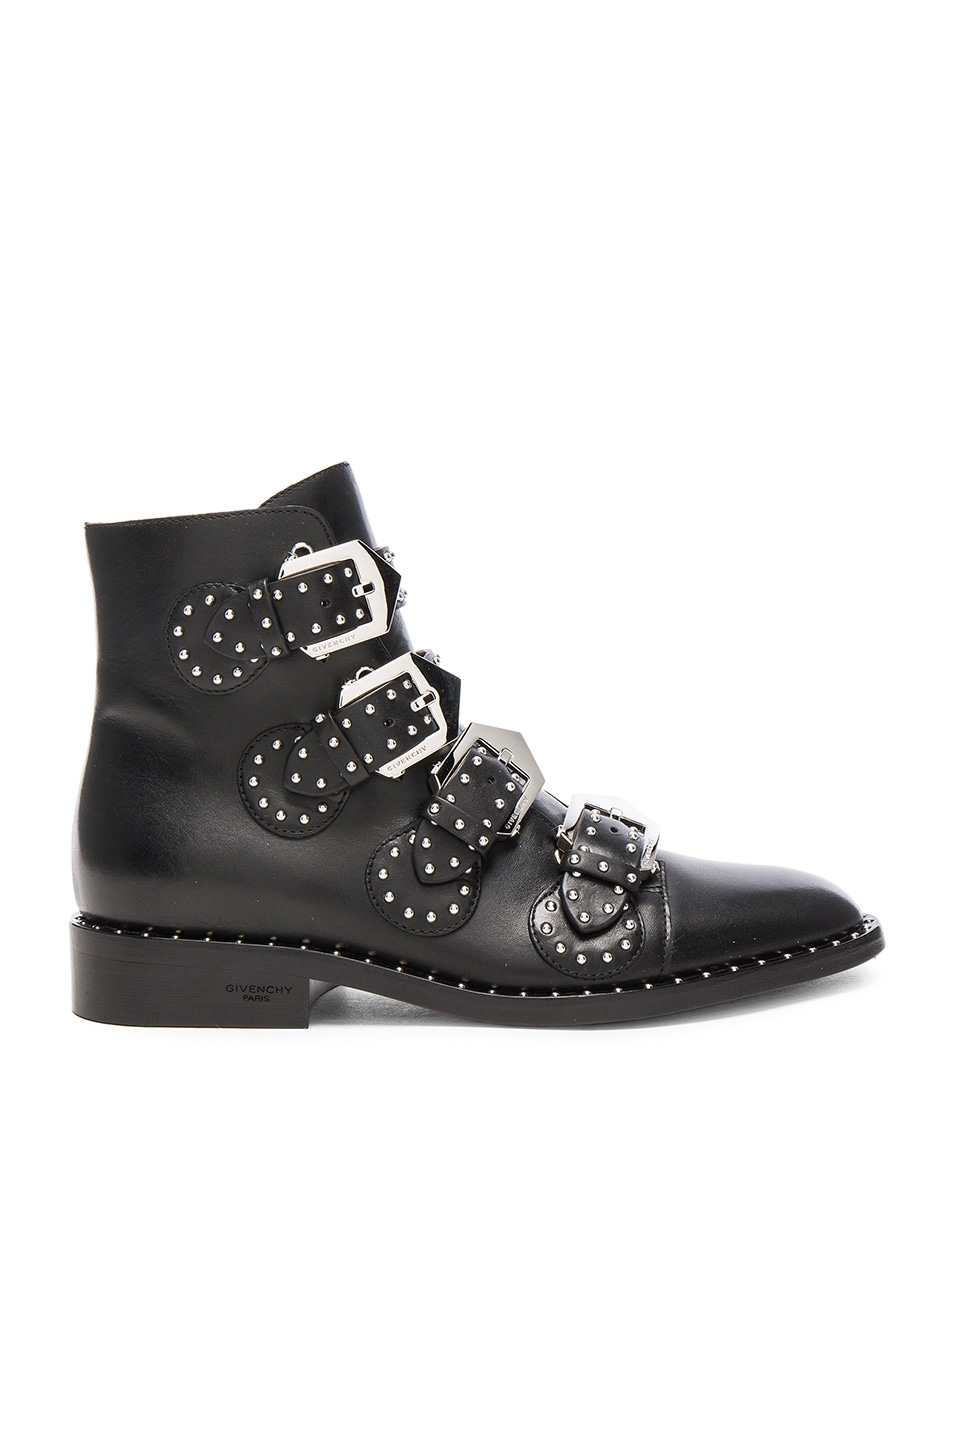 Image 1 of Givenchy Elegant Studded Leather Ankle Boots in Black 74fd8a8f4c